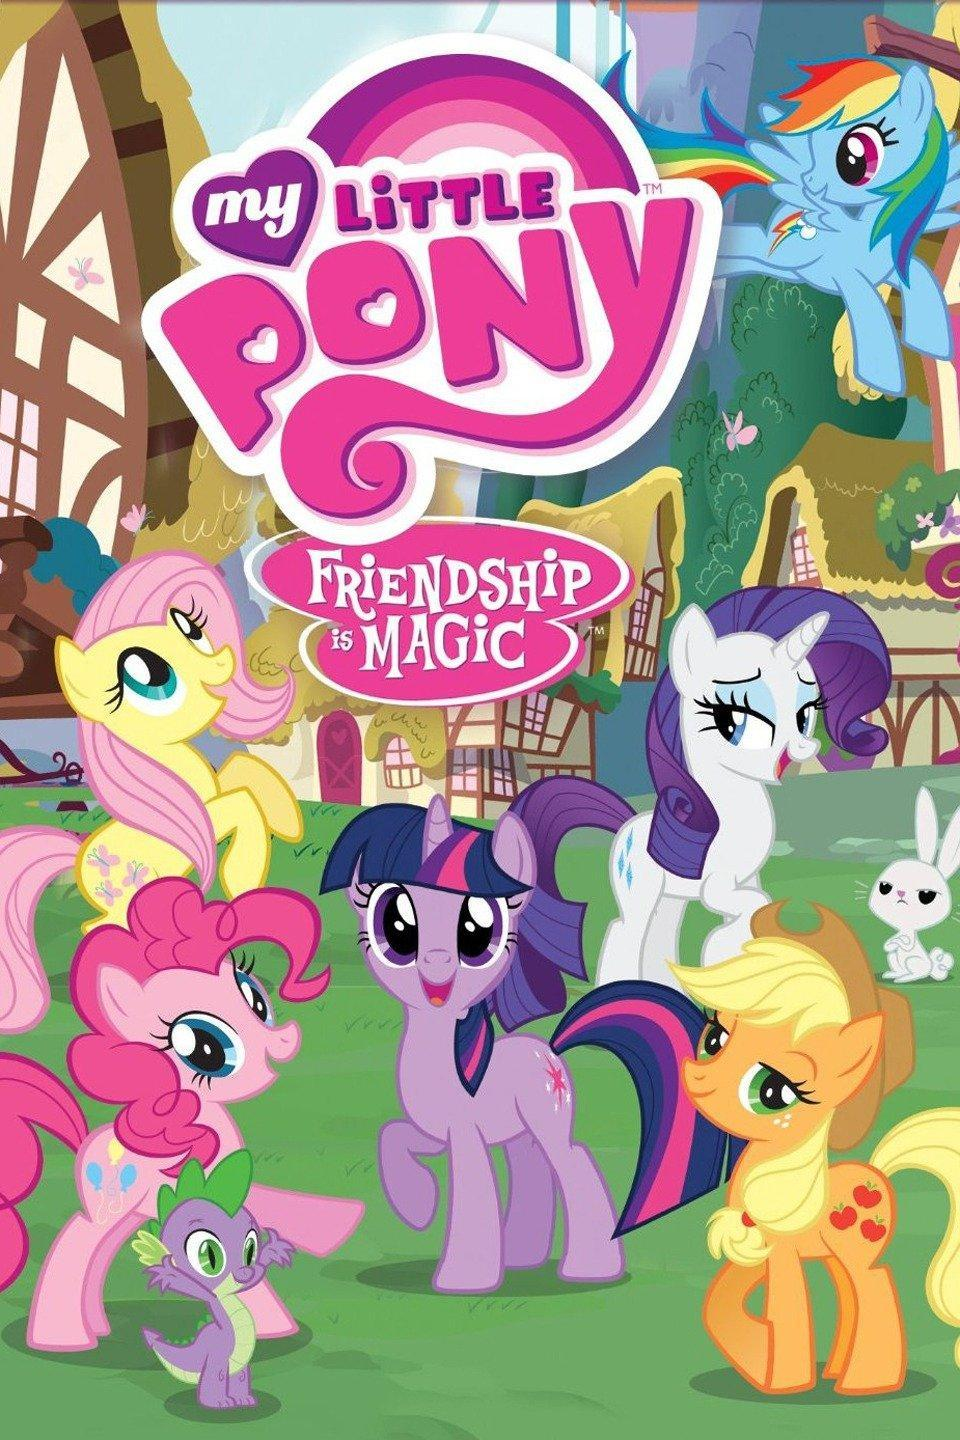 Best of the MLP ponies?